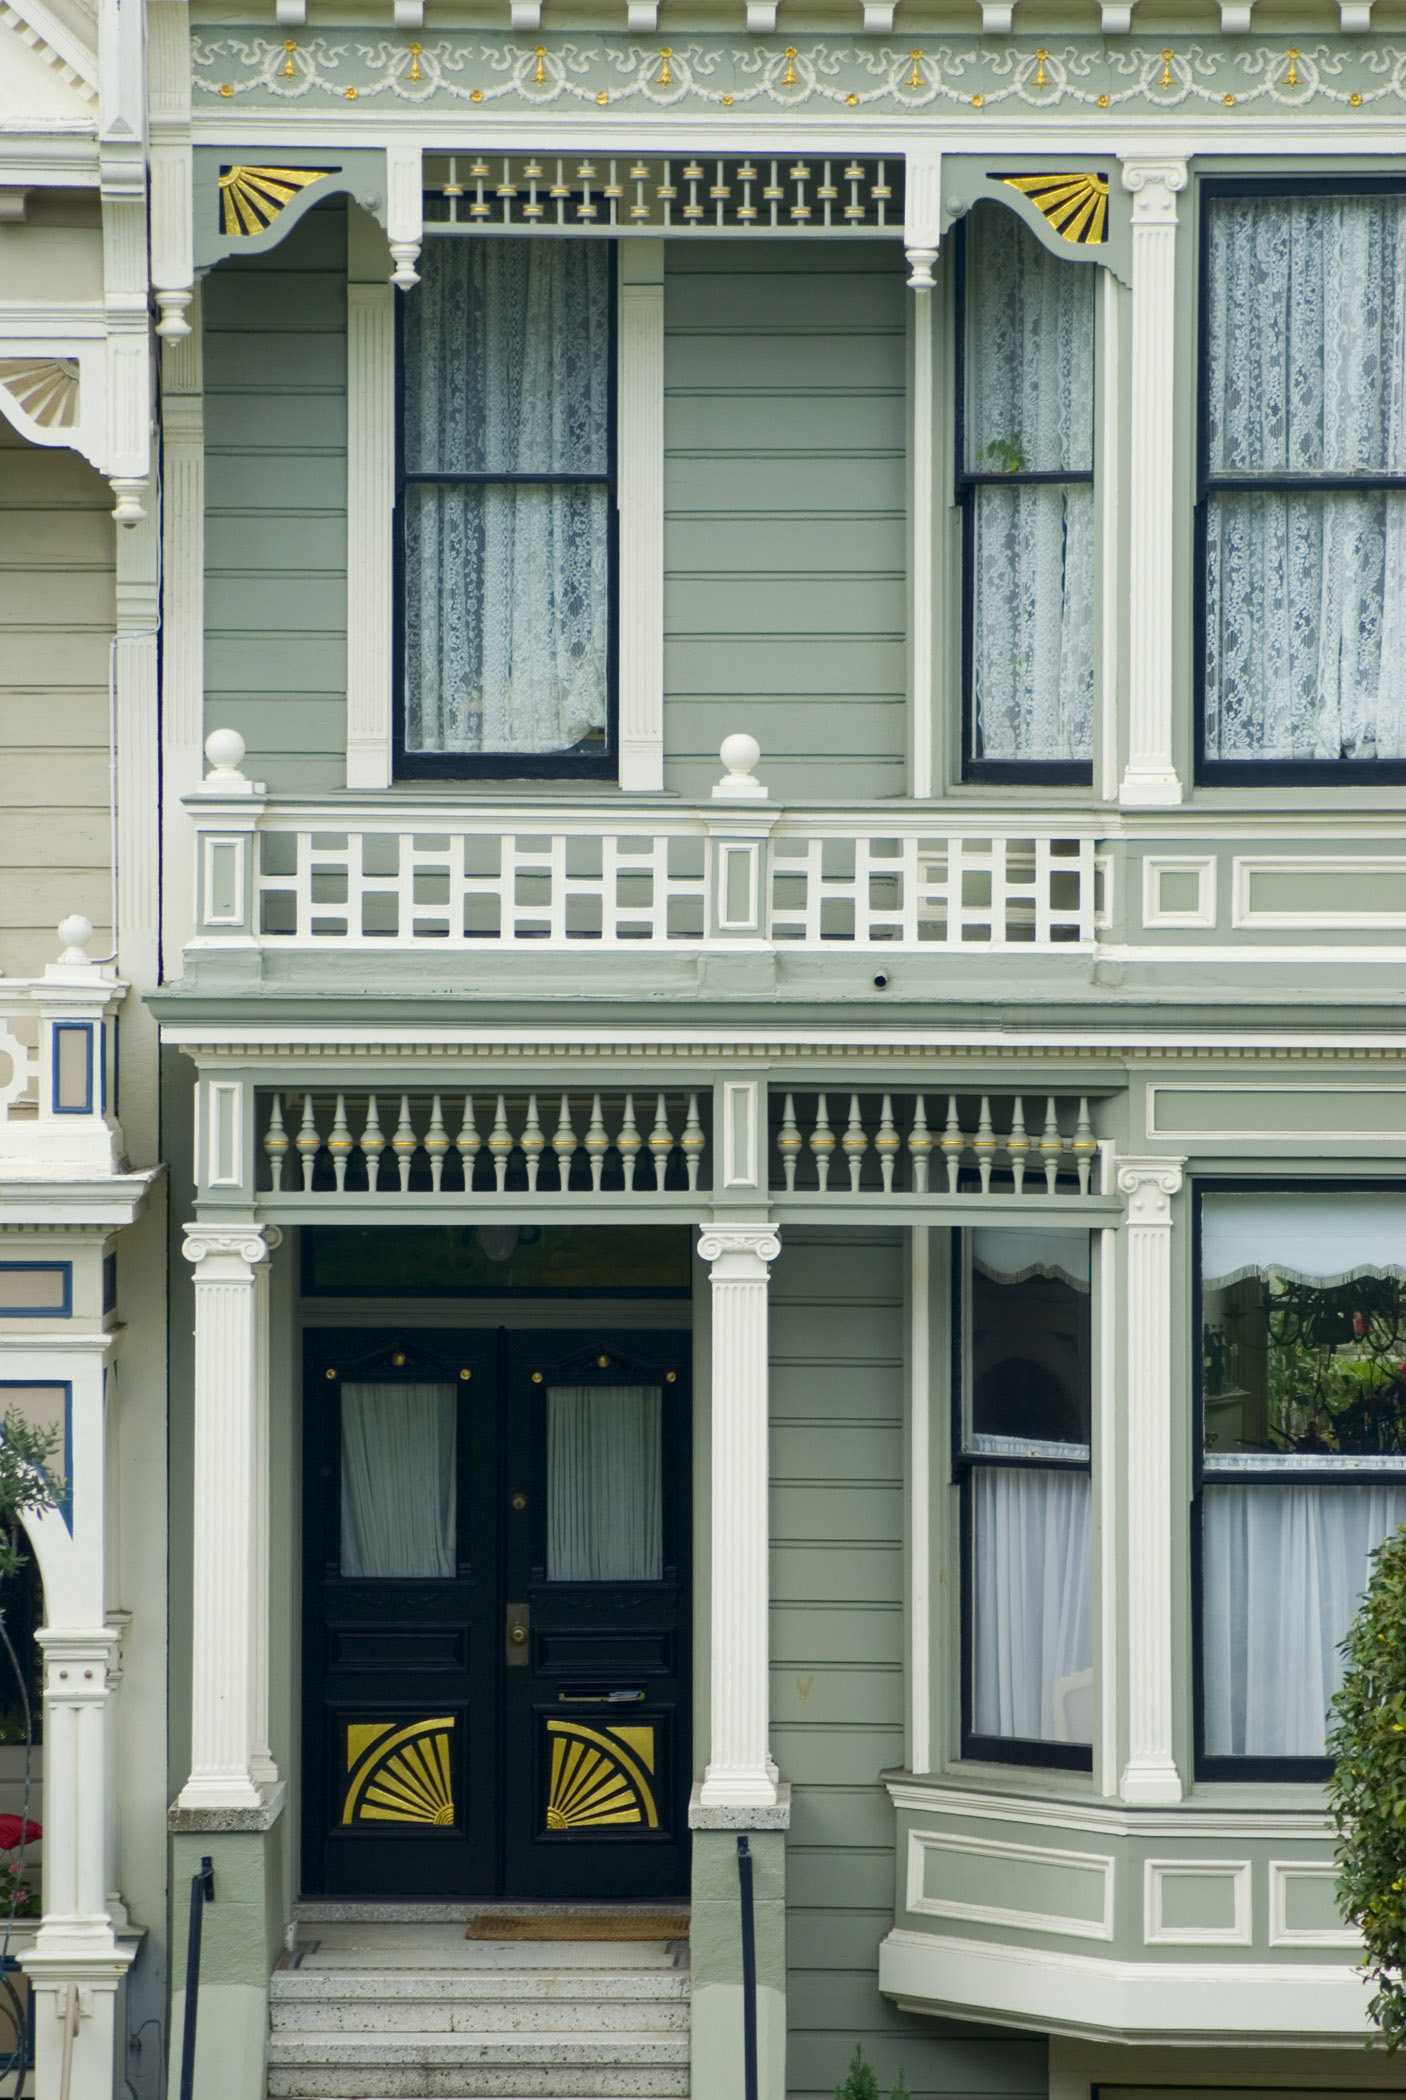 Free Stock photo of Architectural Historic House Front View ...